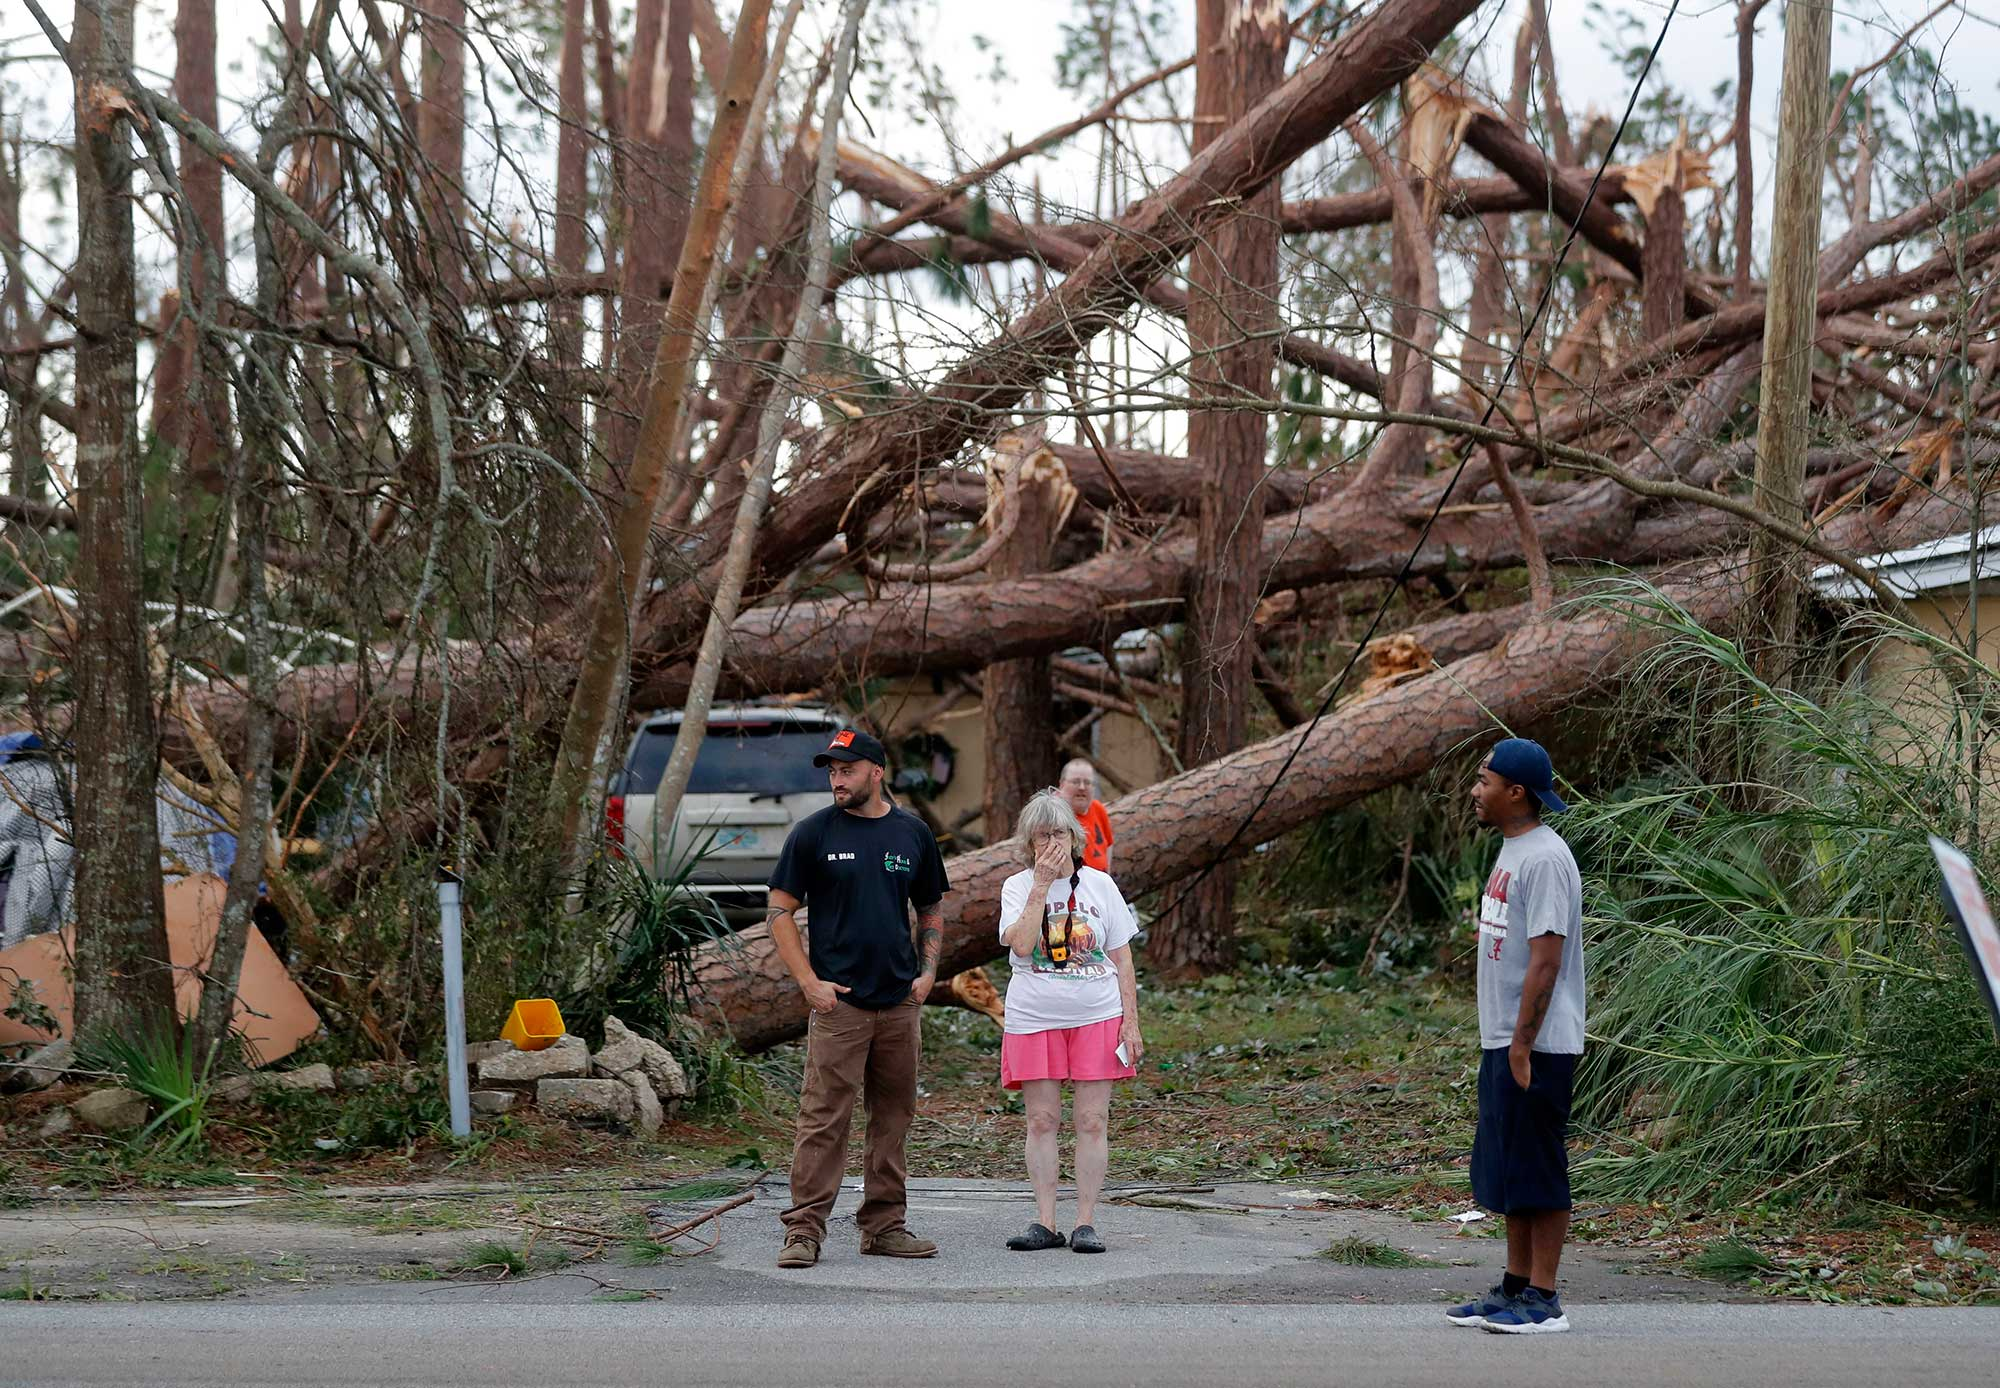 <div class='meta'><div class='origin-logo' data-origin='none'></div><span class='caption-text' data-credit='Gerald Herbert/AP Photo'>Joyce Fox, center stands in front of her heavily damaged home in the aftermath of Hurricane Michael in Panama City, Fla., Thursday, Oct. 11, 2018.</span></div>